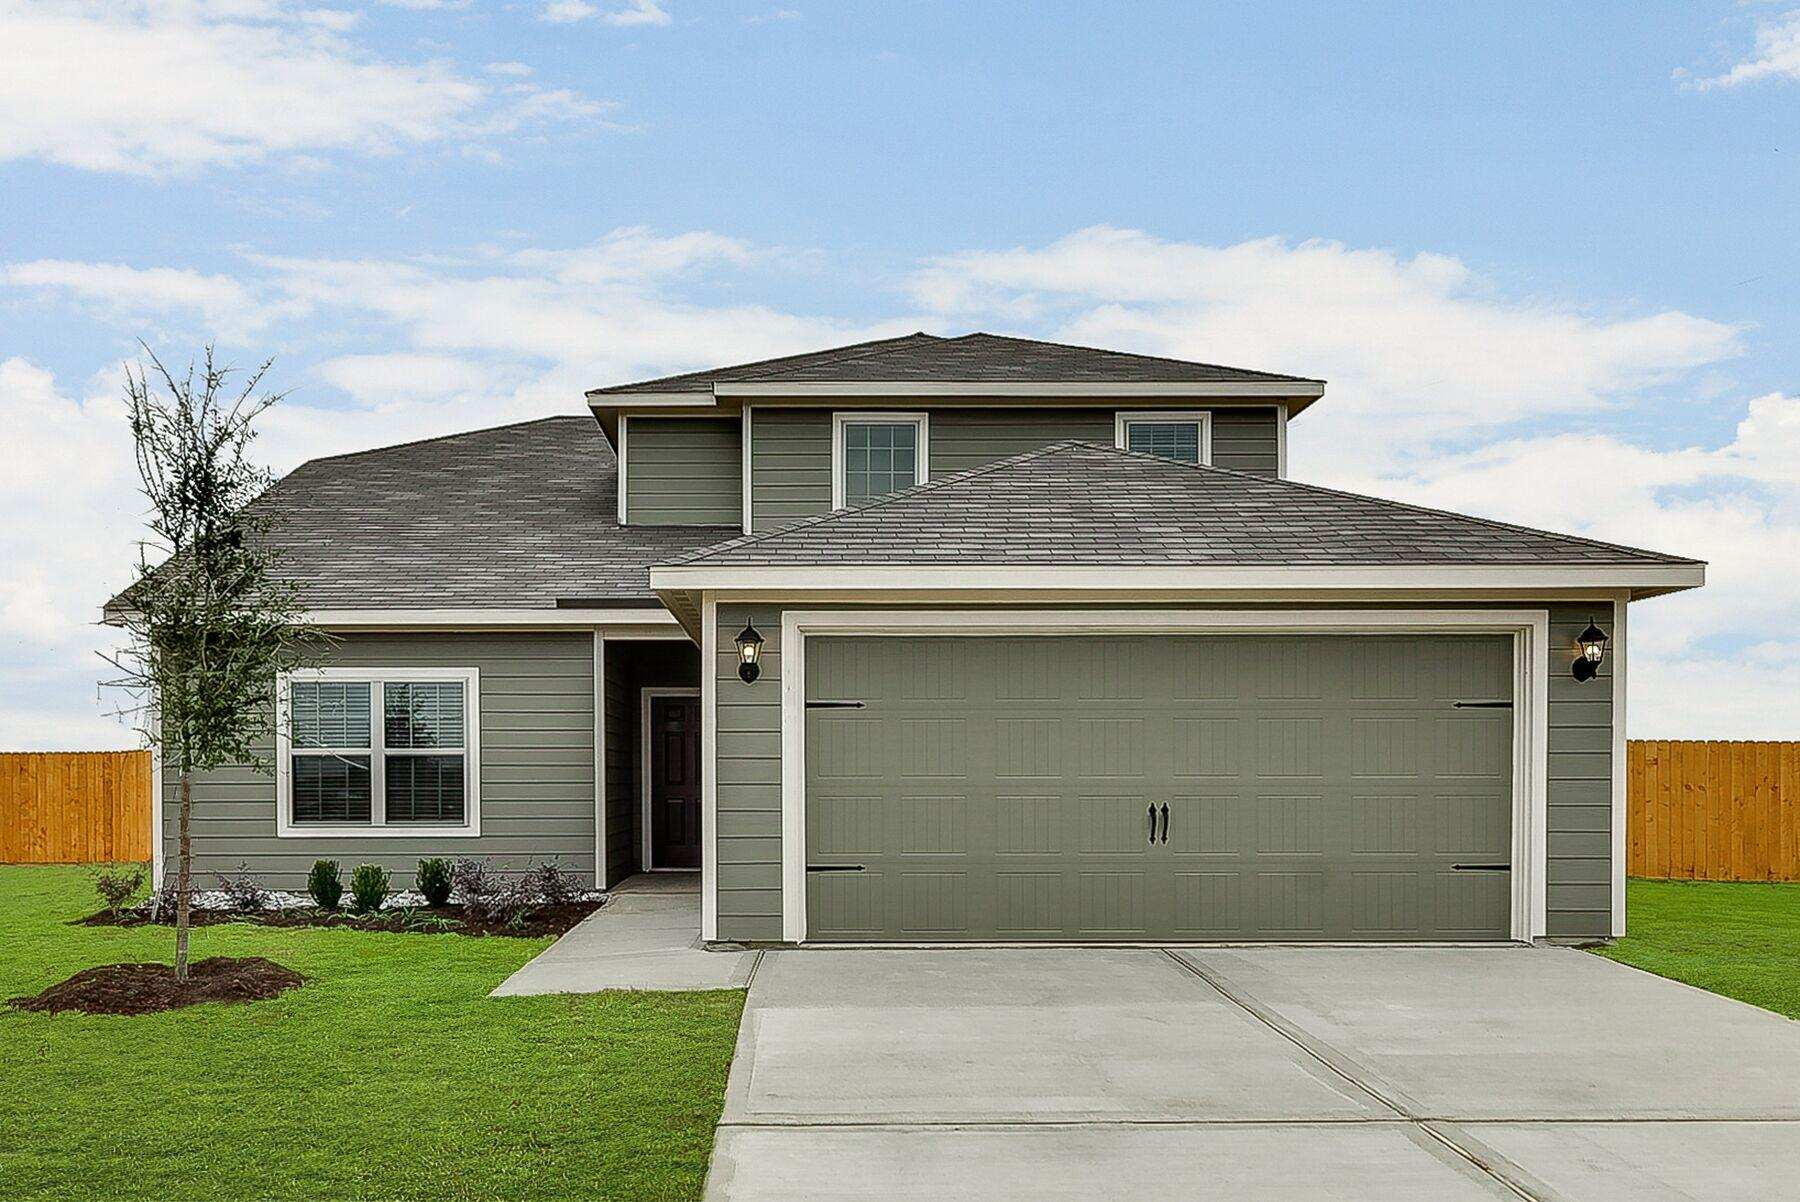 The Cypress by LGI Homes:The Cypress has 4 bedrooms, 2.5 baths, and a two-car garage!